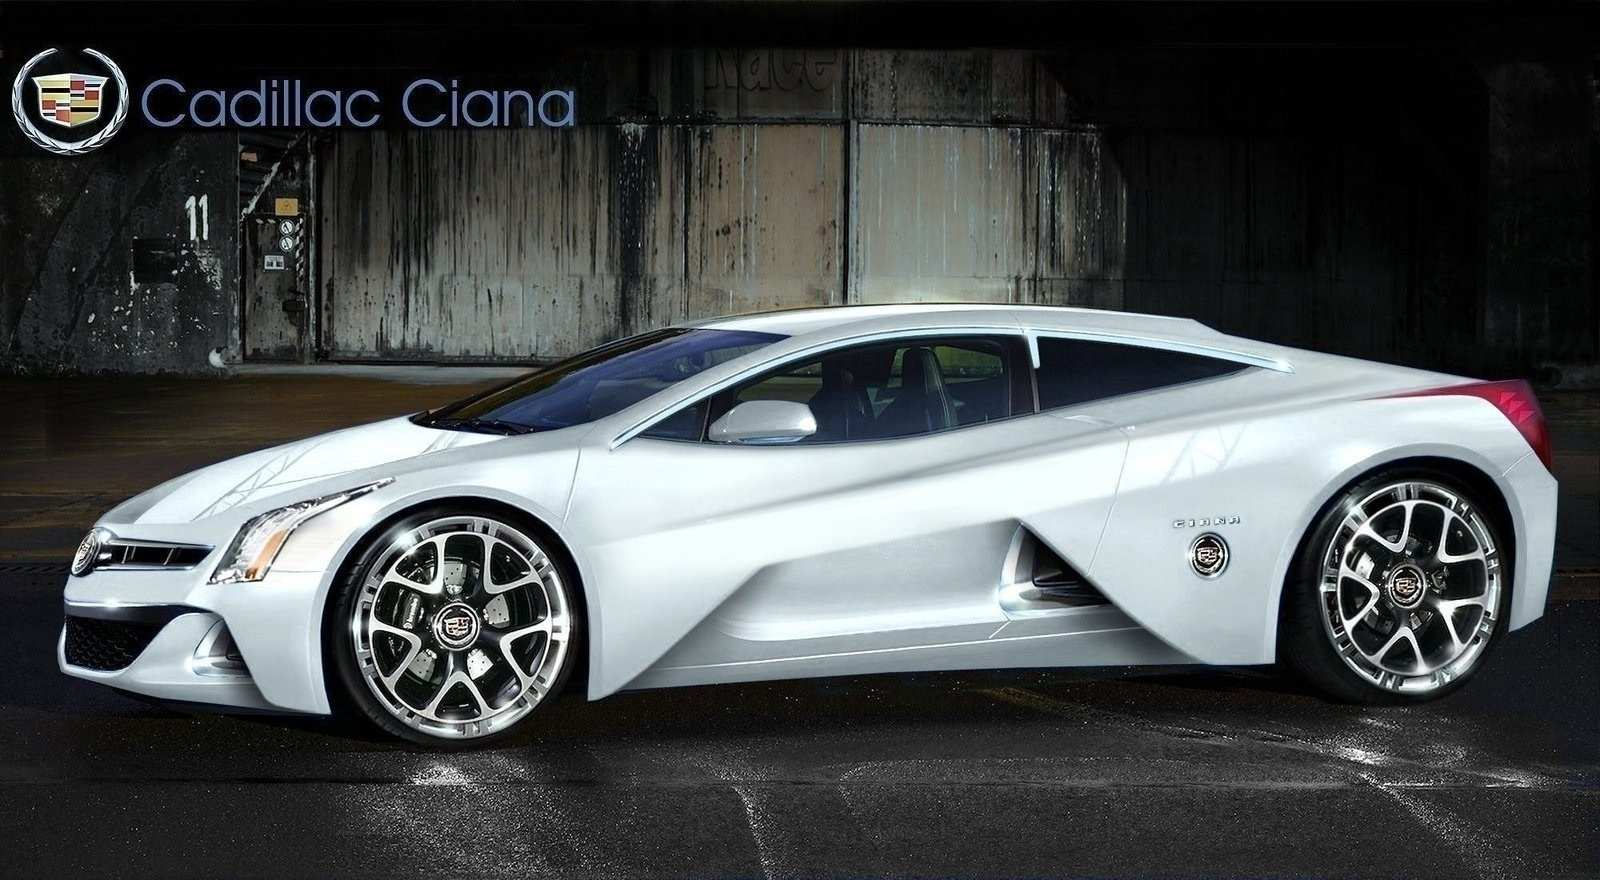 82 The 2019 Cadillac Ciana Pictures